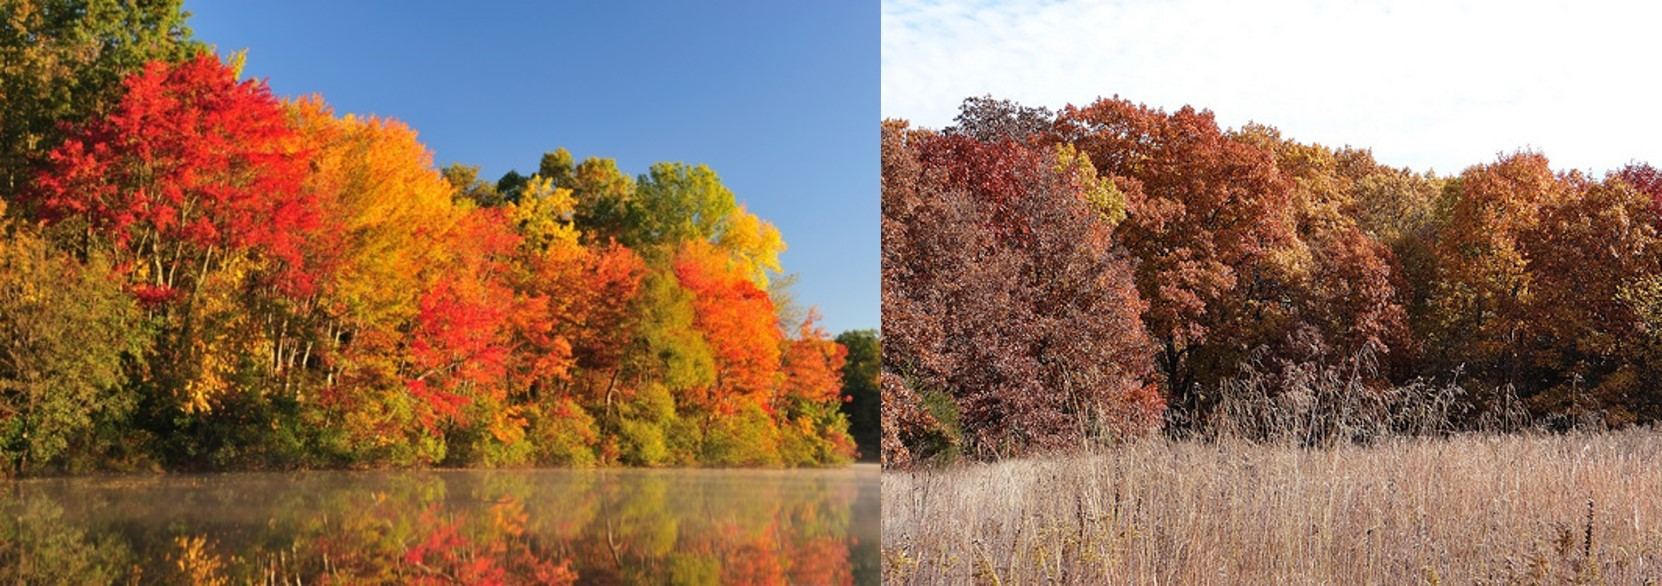 Fall color of a beech maple forest (left) and oak hickory forest (right)